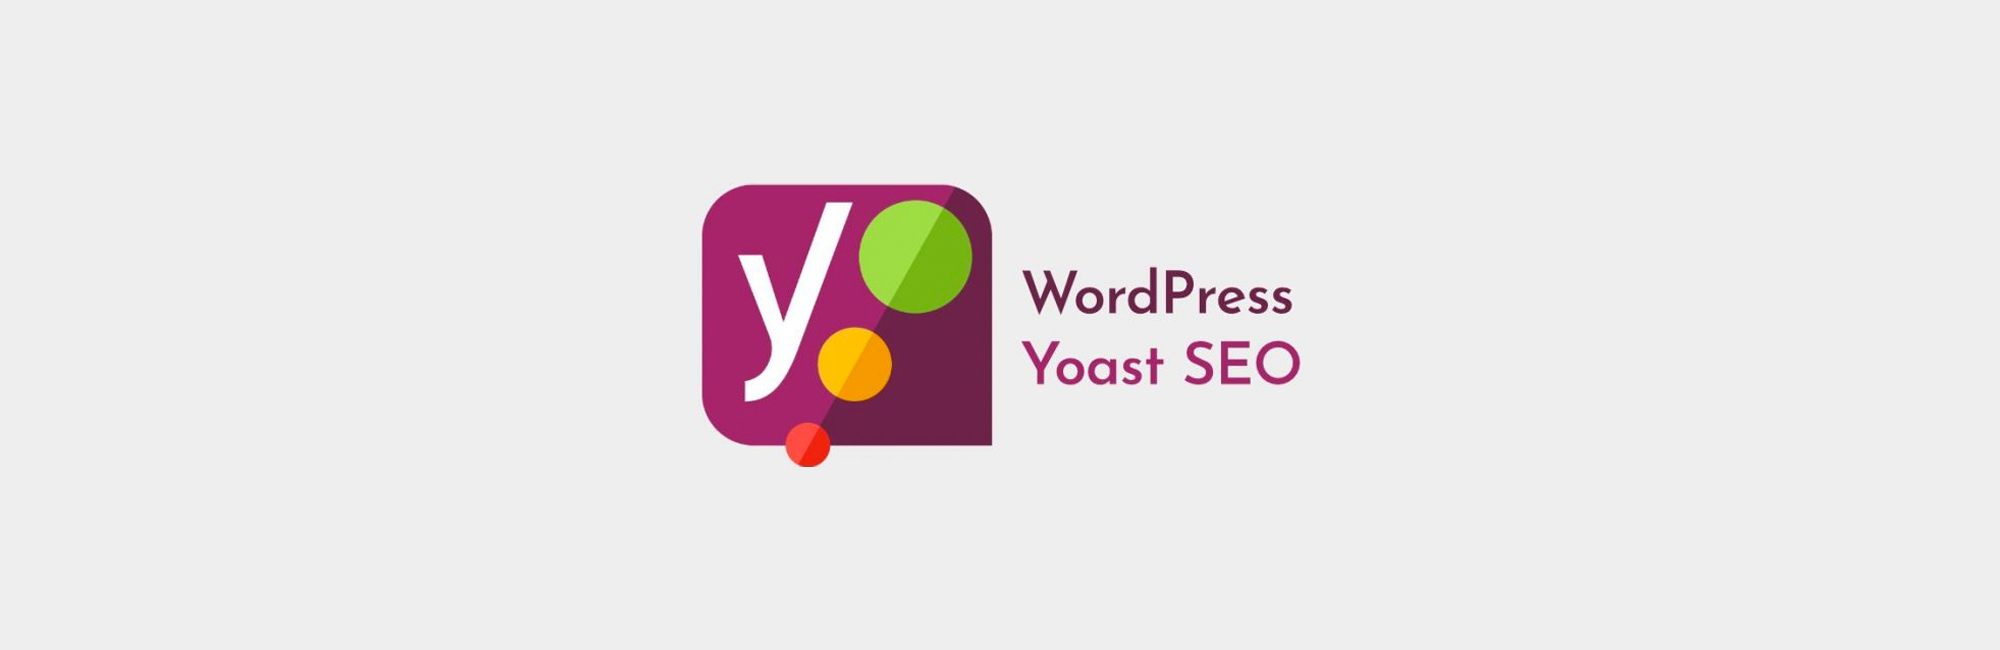 Why Yoast is the Best for SEO